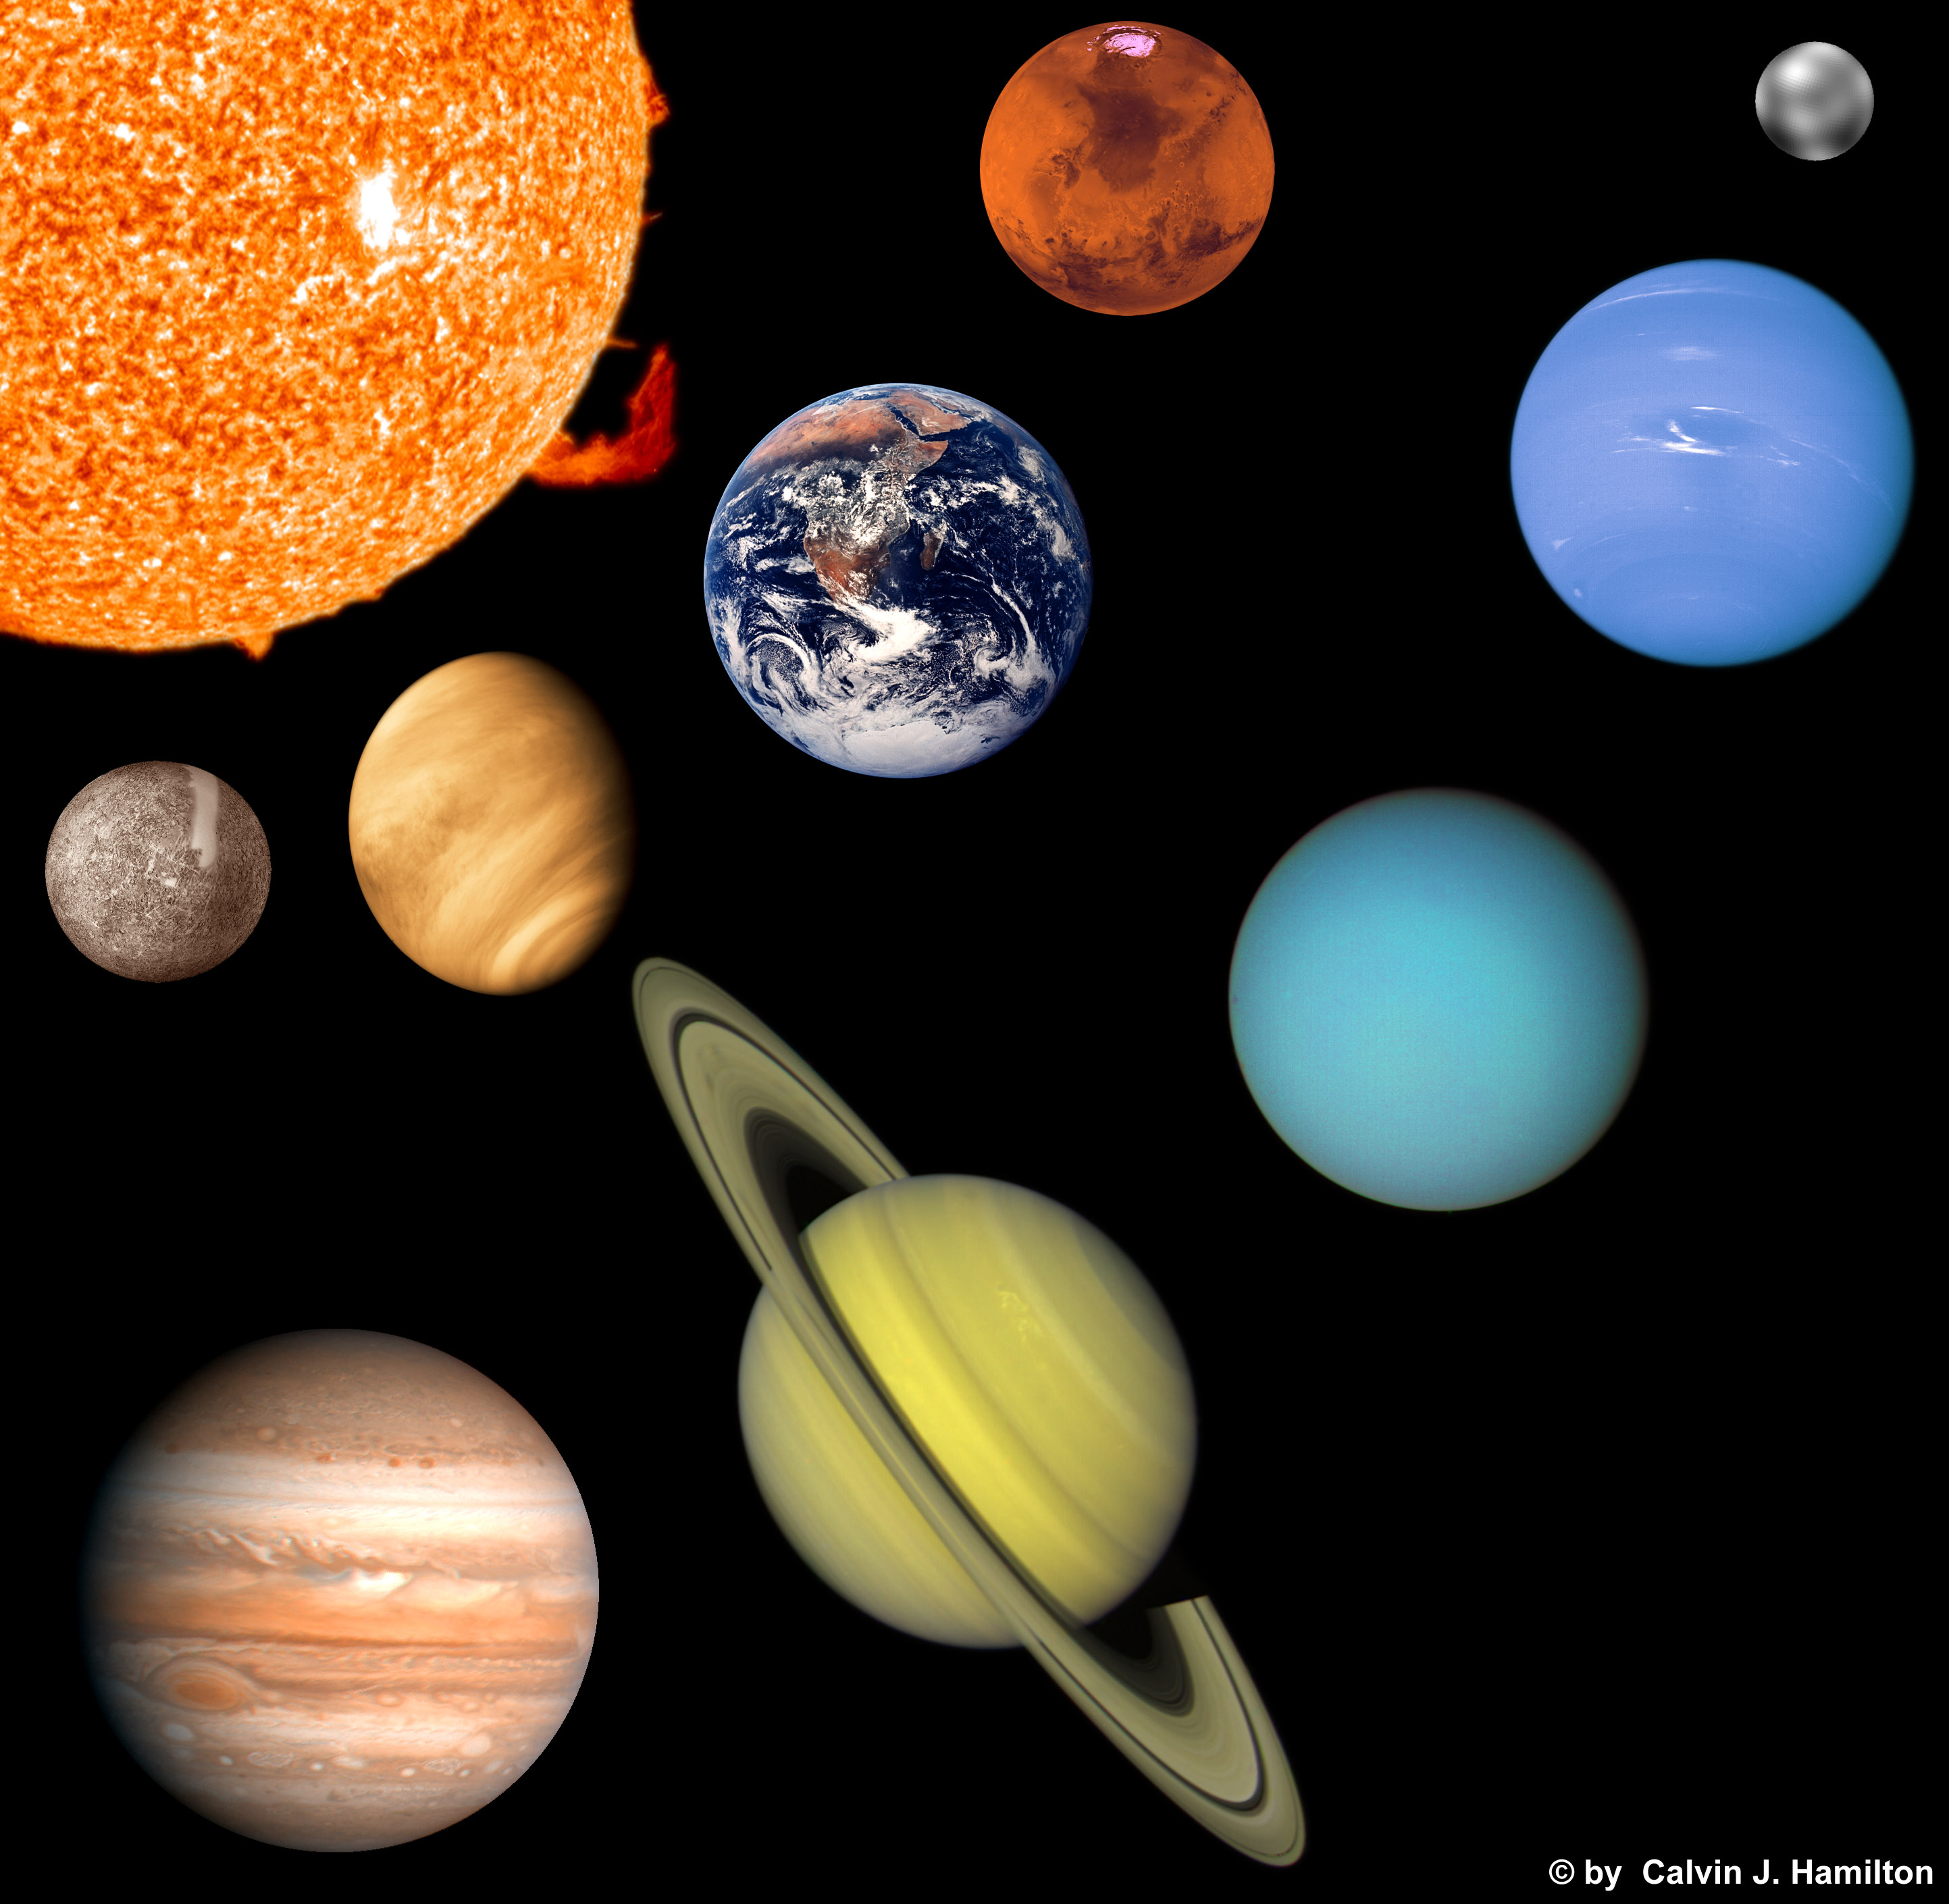 photo relating to Printable Planets to Scale called Photos of Planets Toward Scale Printable - #SpaceHero